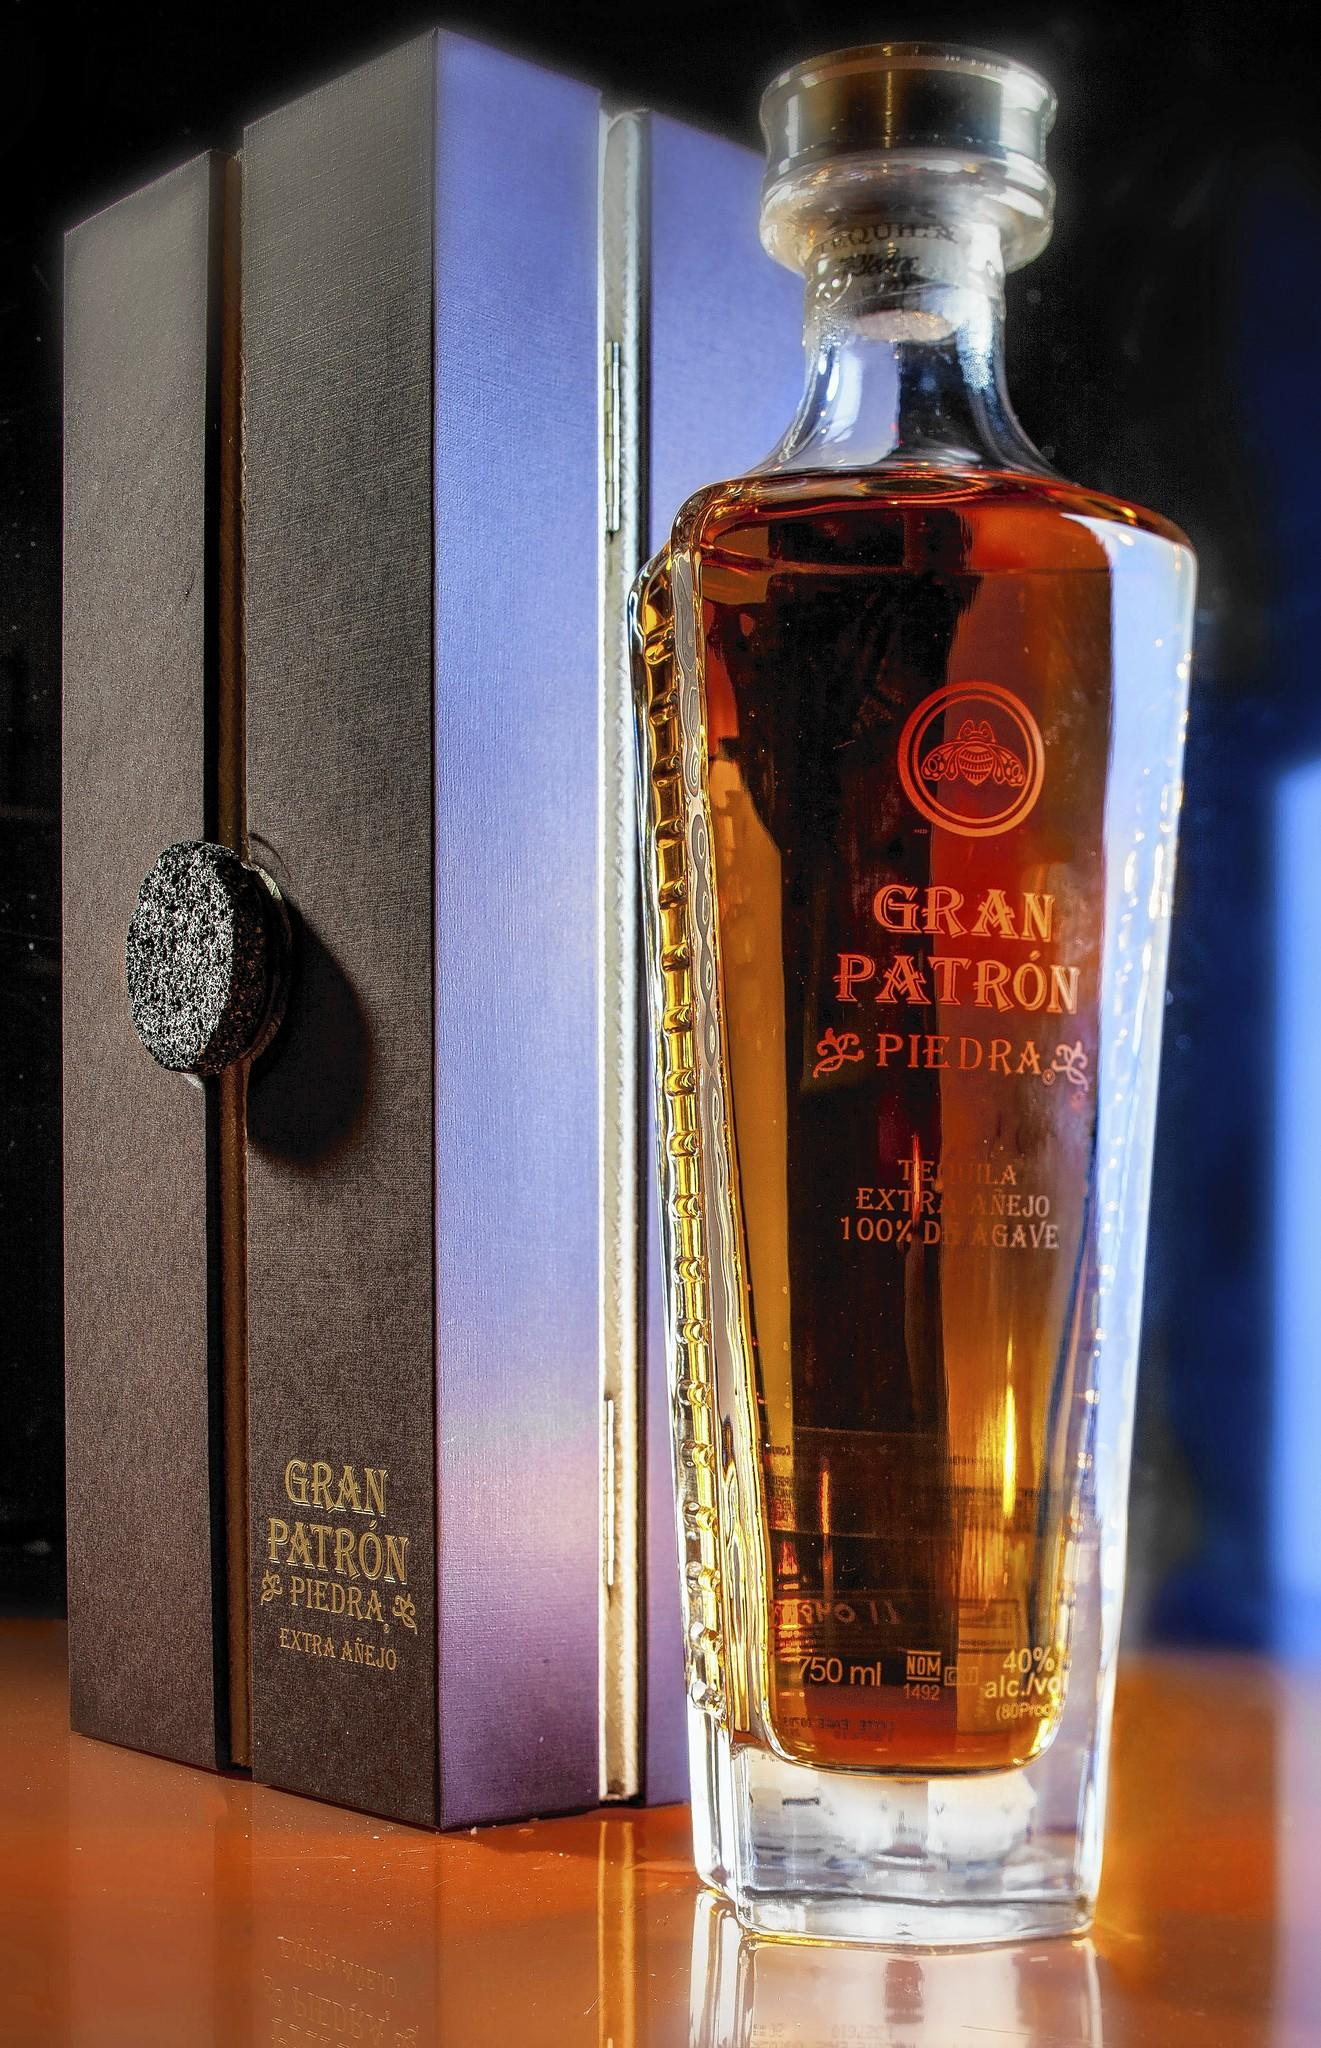 A bottle of Patron's new Extra Anejo tequila.